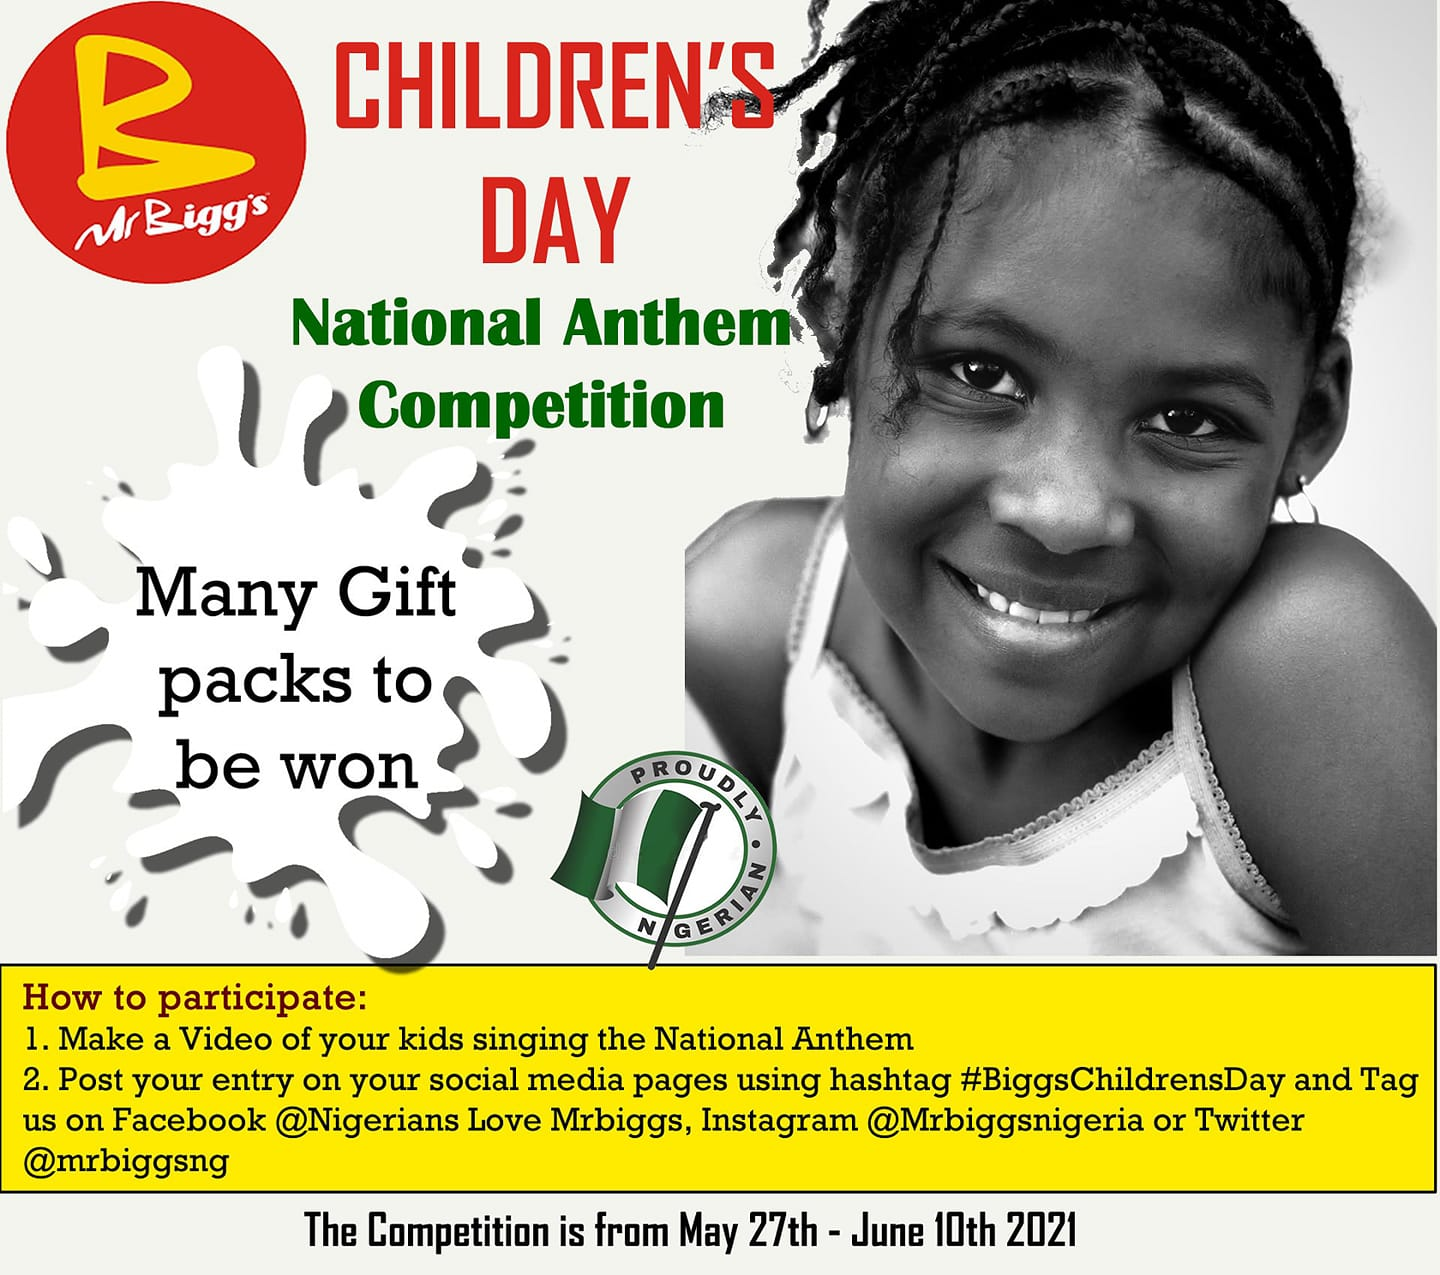 Mr. Biggs National Anthem Competition, Loads of Gift Packs to be Won.